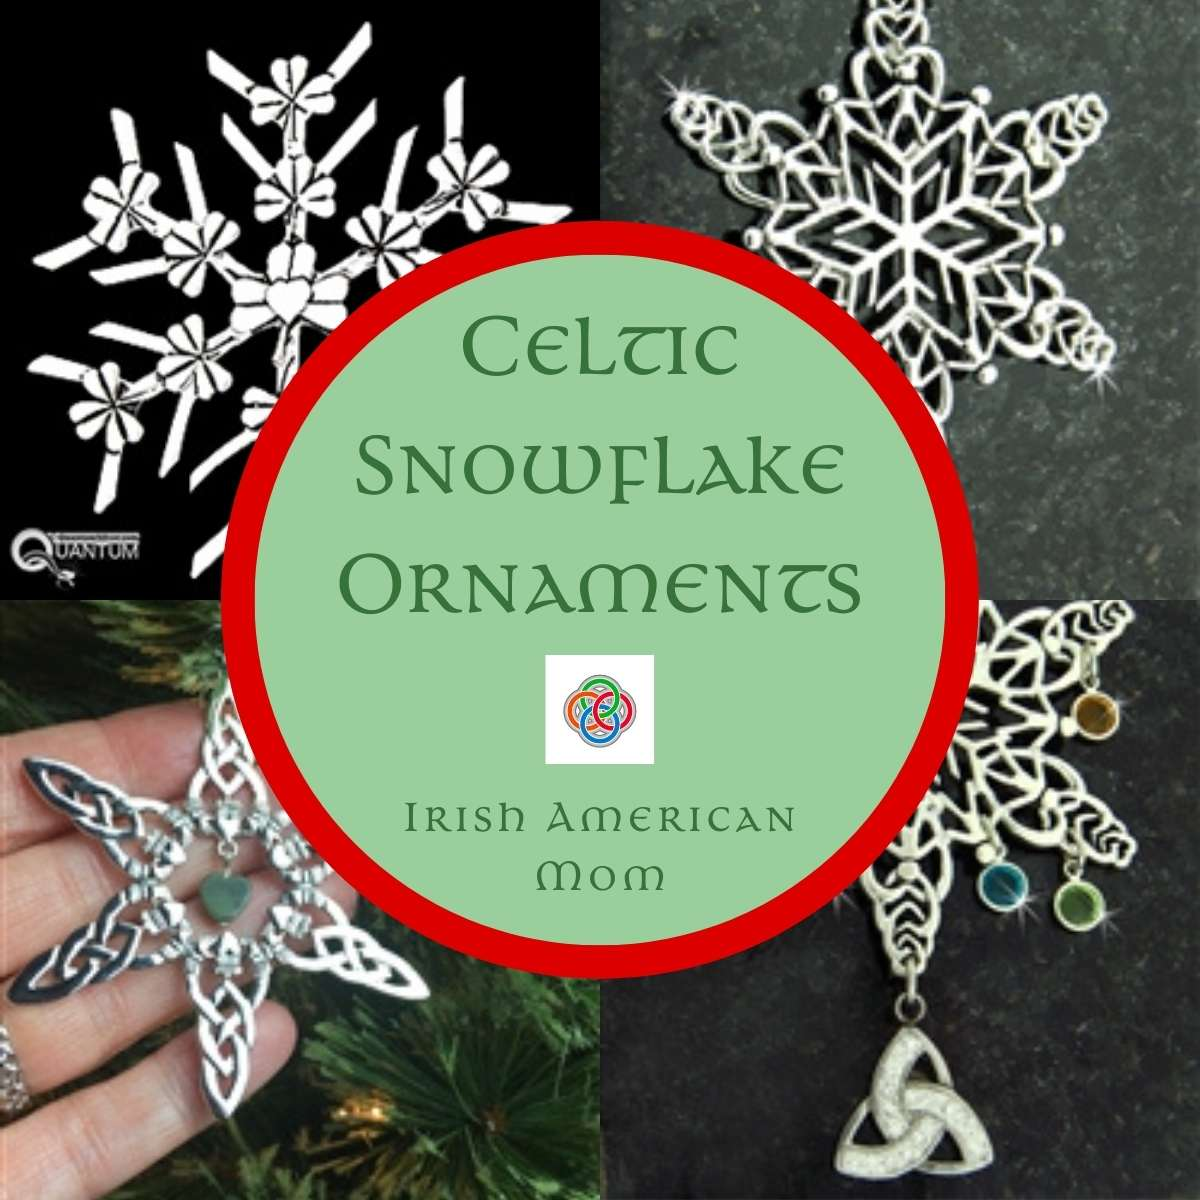 Four picture collage featuring silver snowflake ornaments with Celtic design and text on a circular highlight box